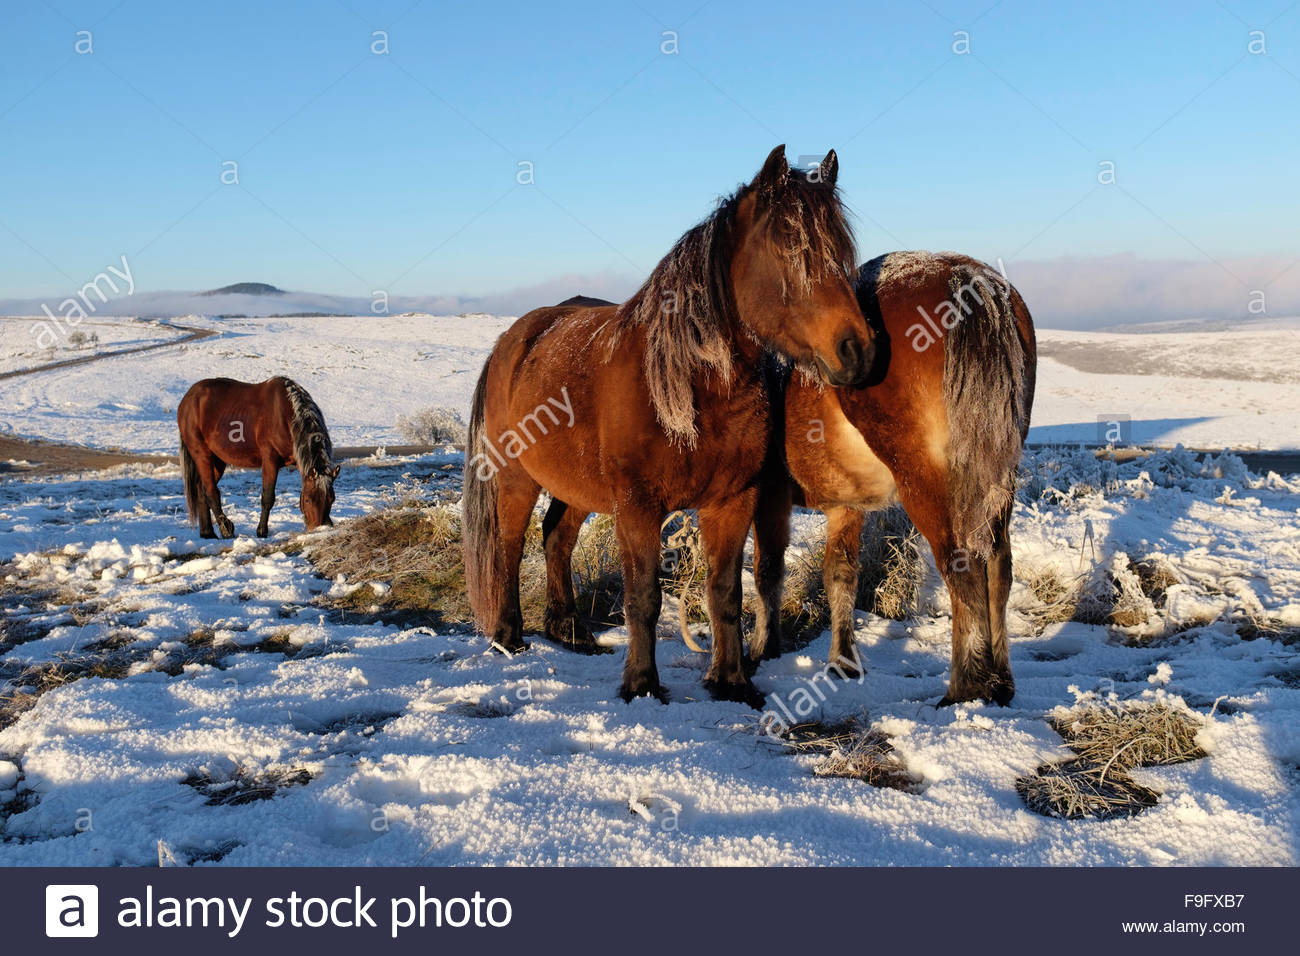 Wild horses in the fields - Stock Image